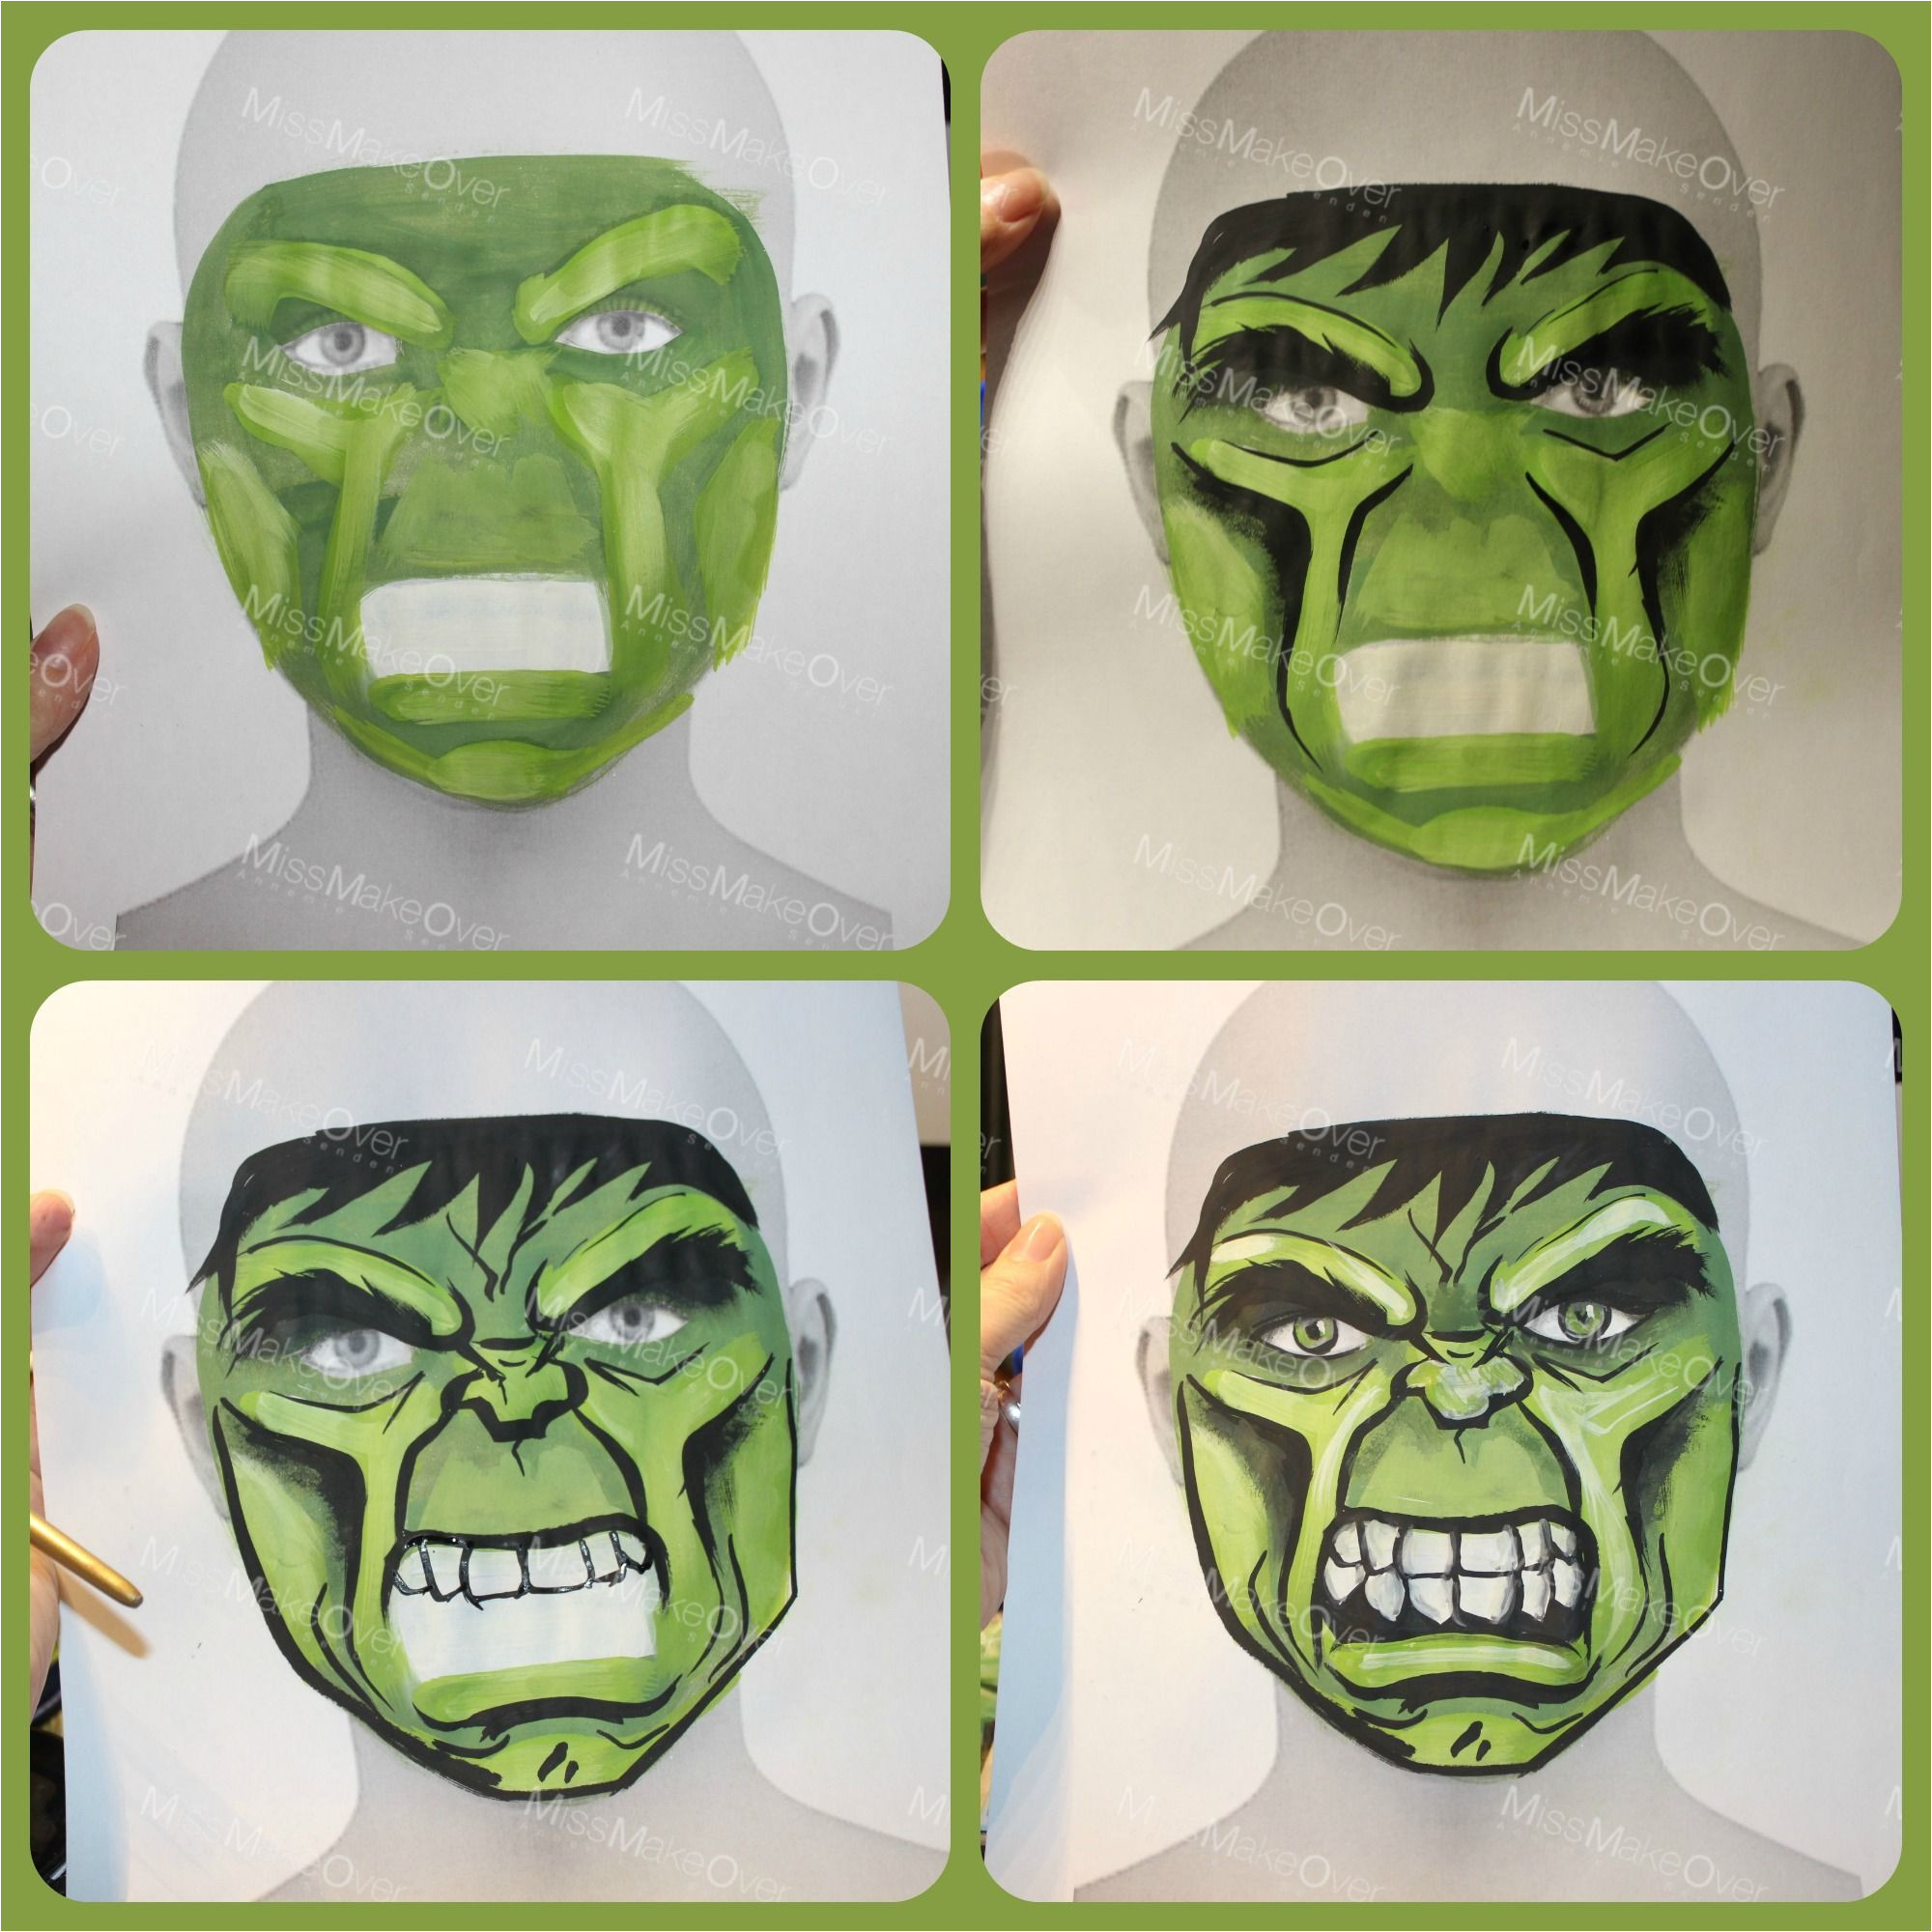 Incredible Hulk Face Template the Incredible Hulk Face Paint Sketch On Face Template by